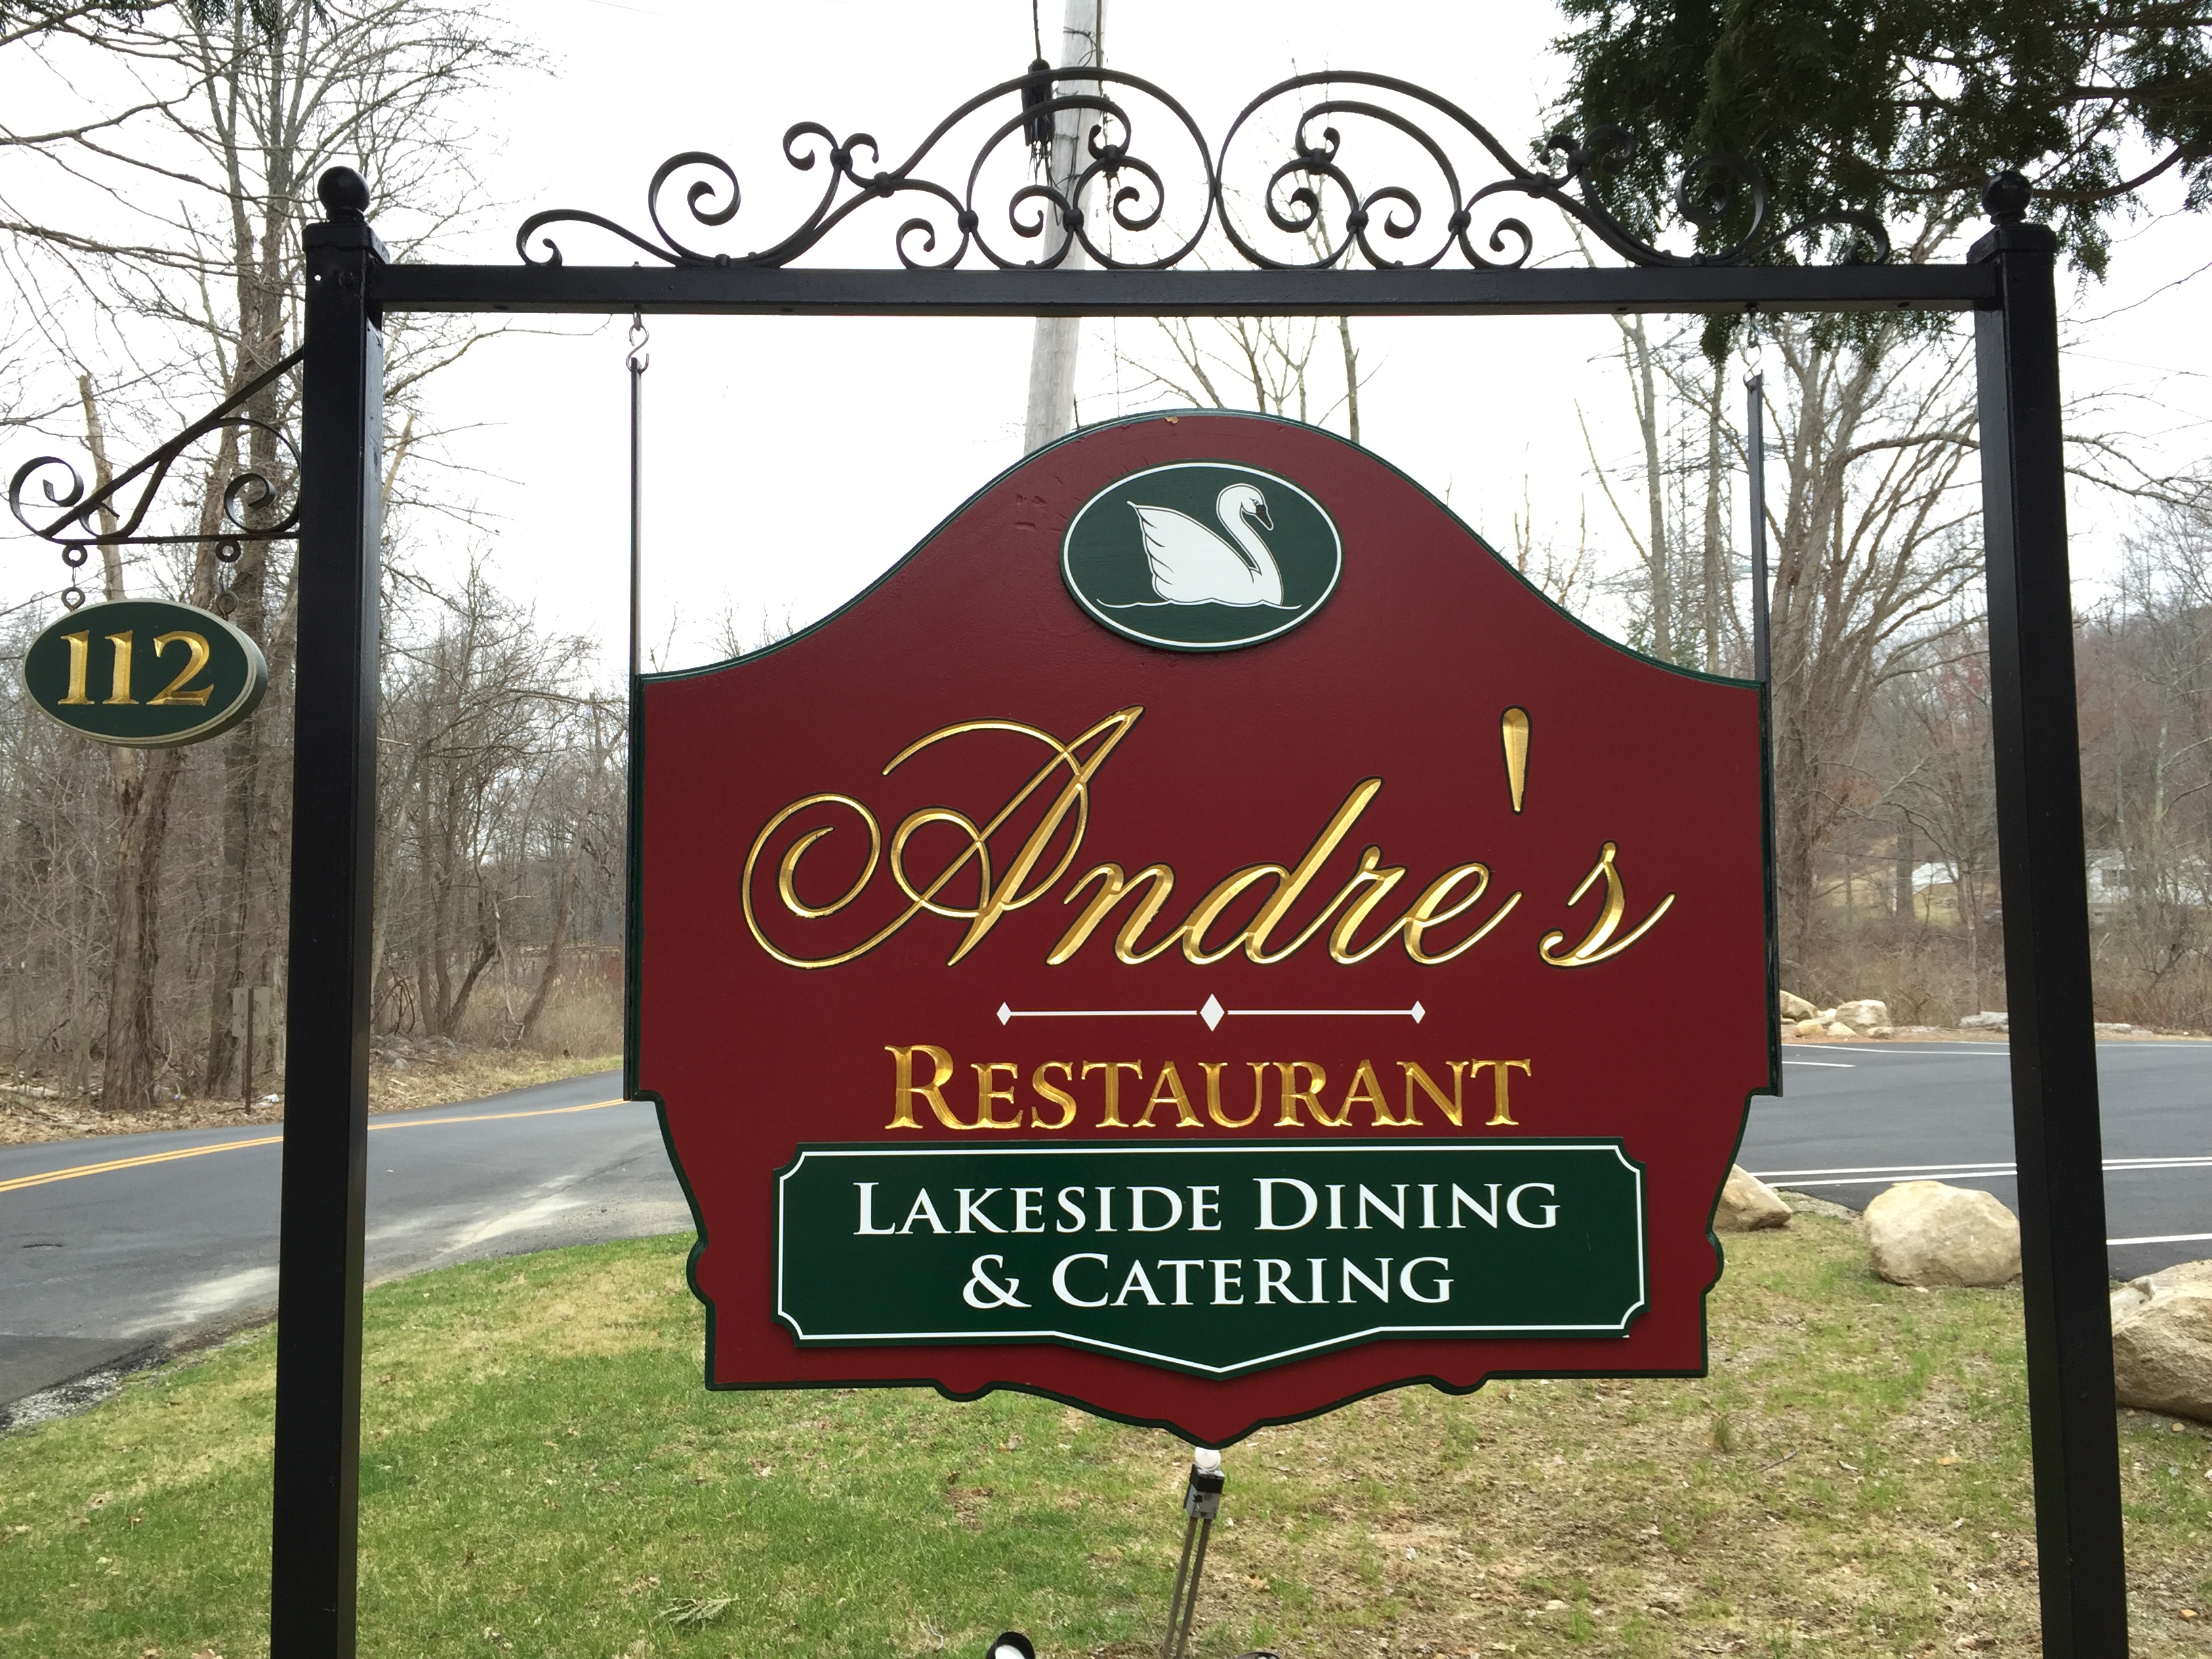 Andre's Restaurant is the current tenant of th commercial property on the lake.